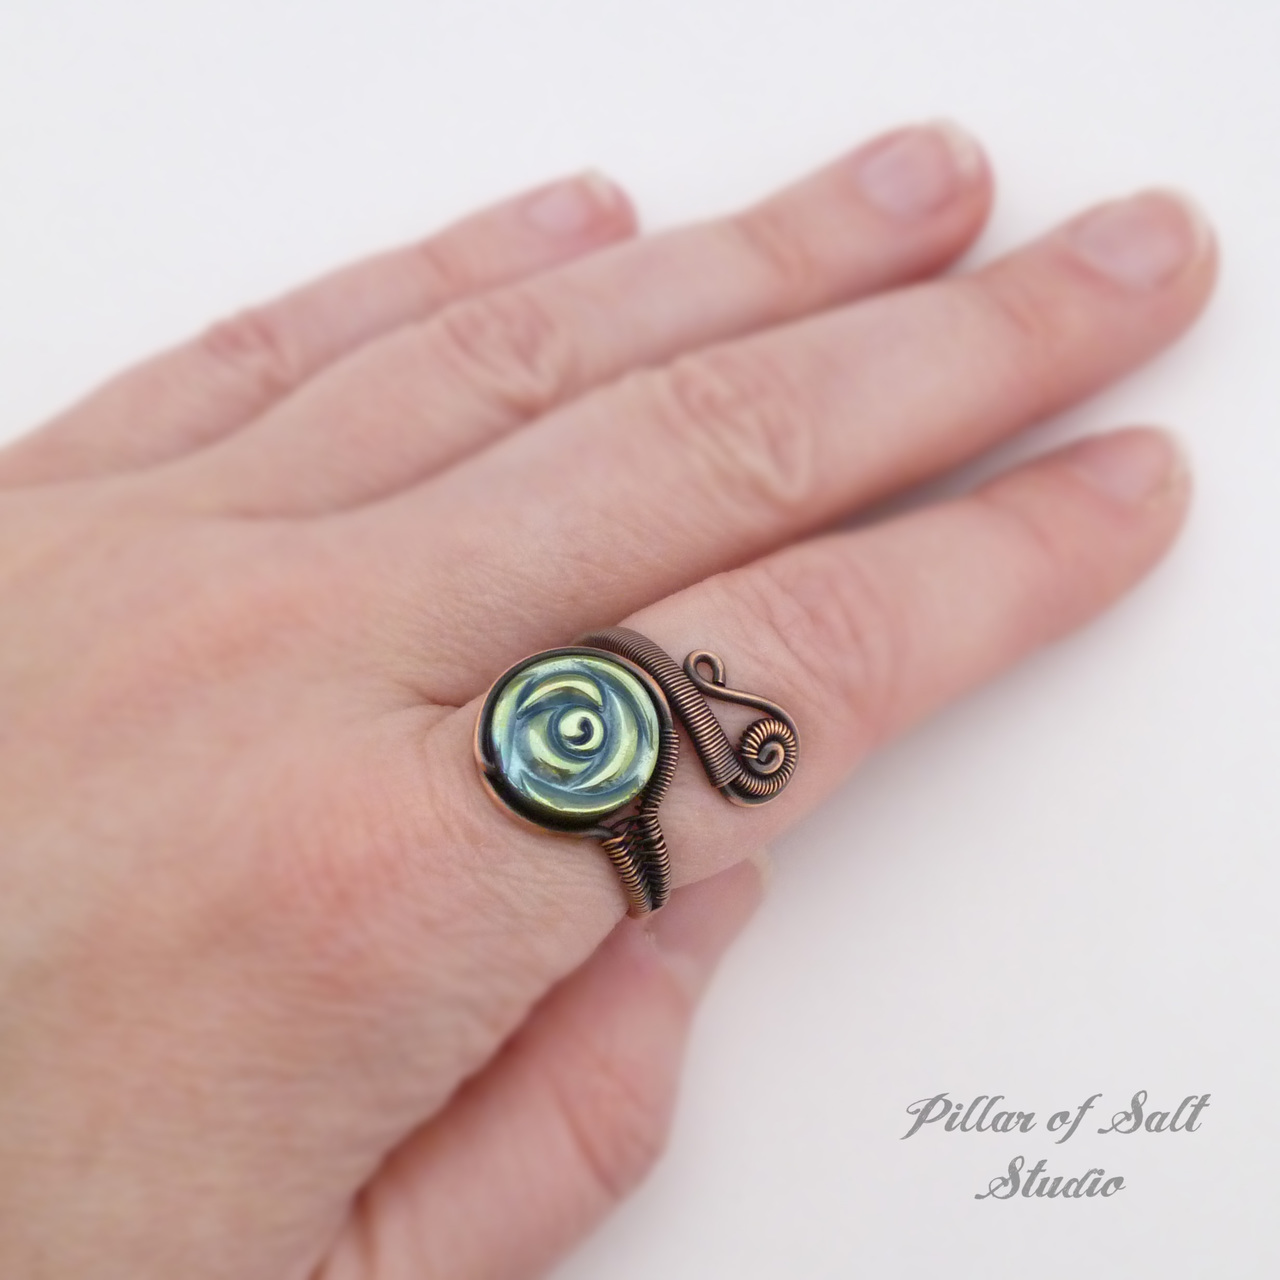 Adjustable copper wire wrapped ring with woven wire band rustic earthy jewelry by Pillar of Salt Studio